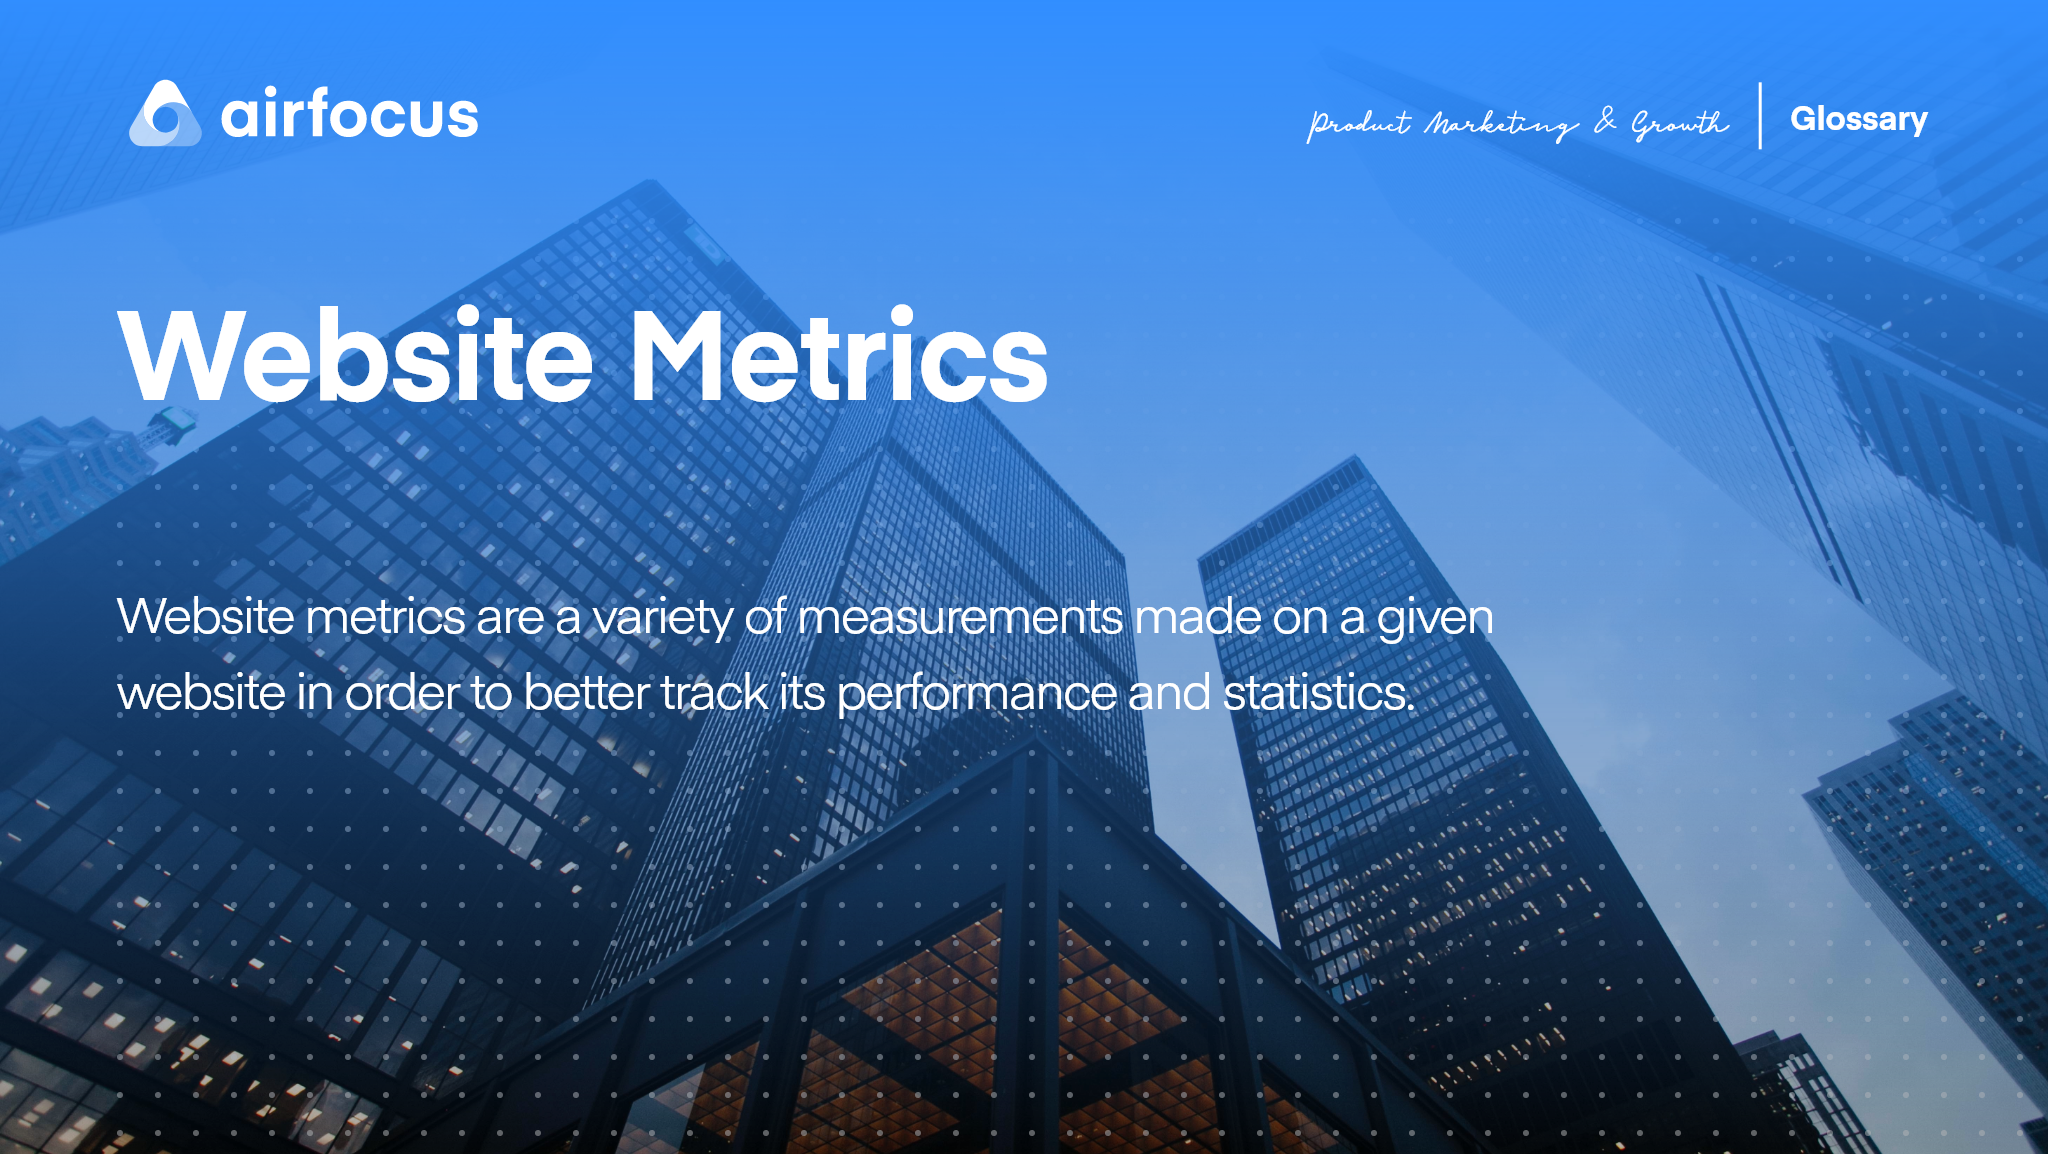 What are Website Metrics